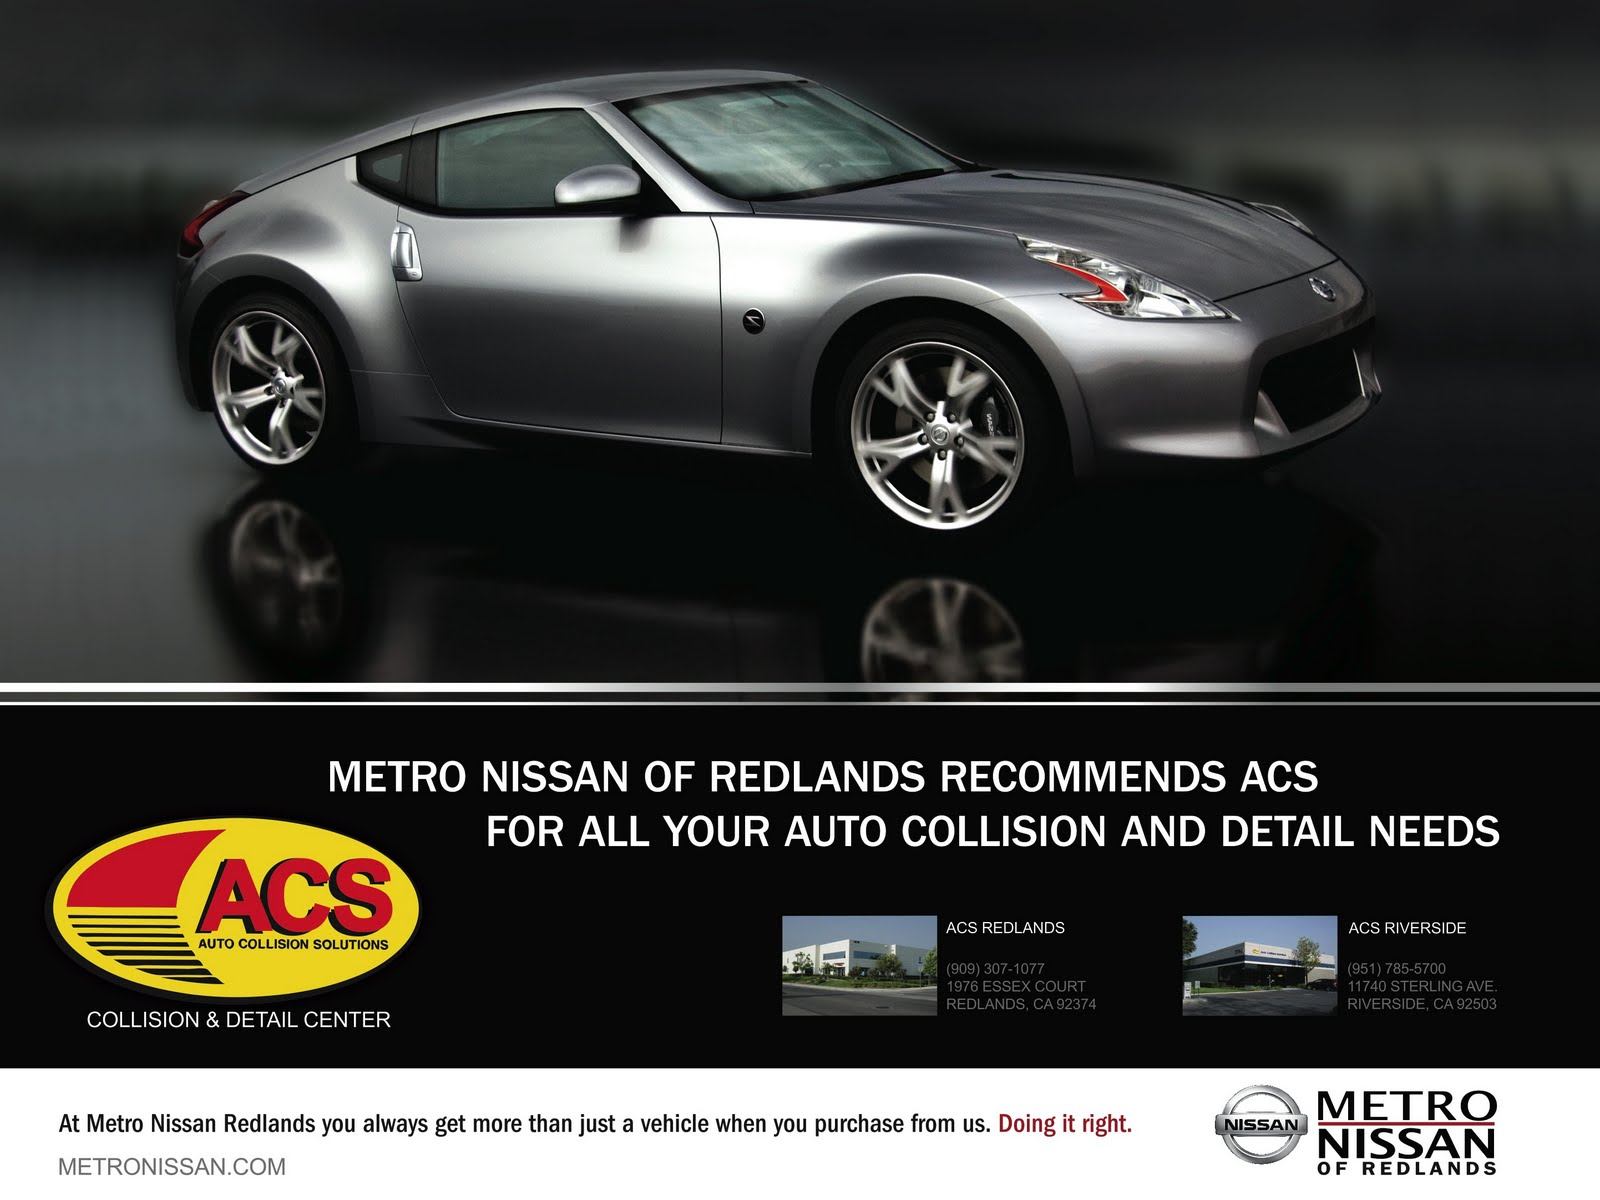 ACS And Metro Nissan Poster